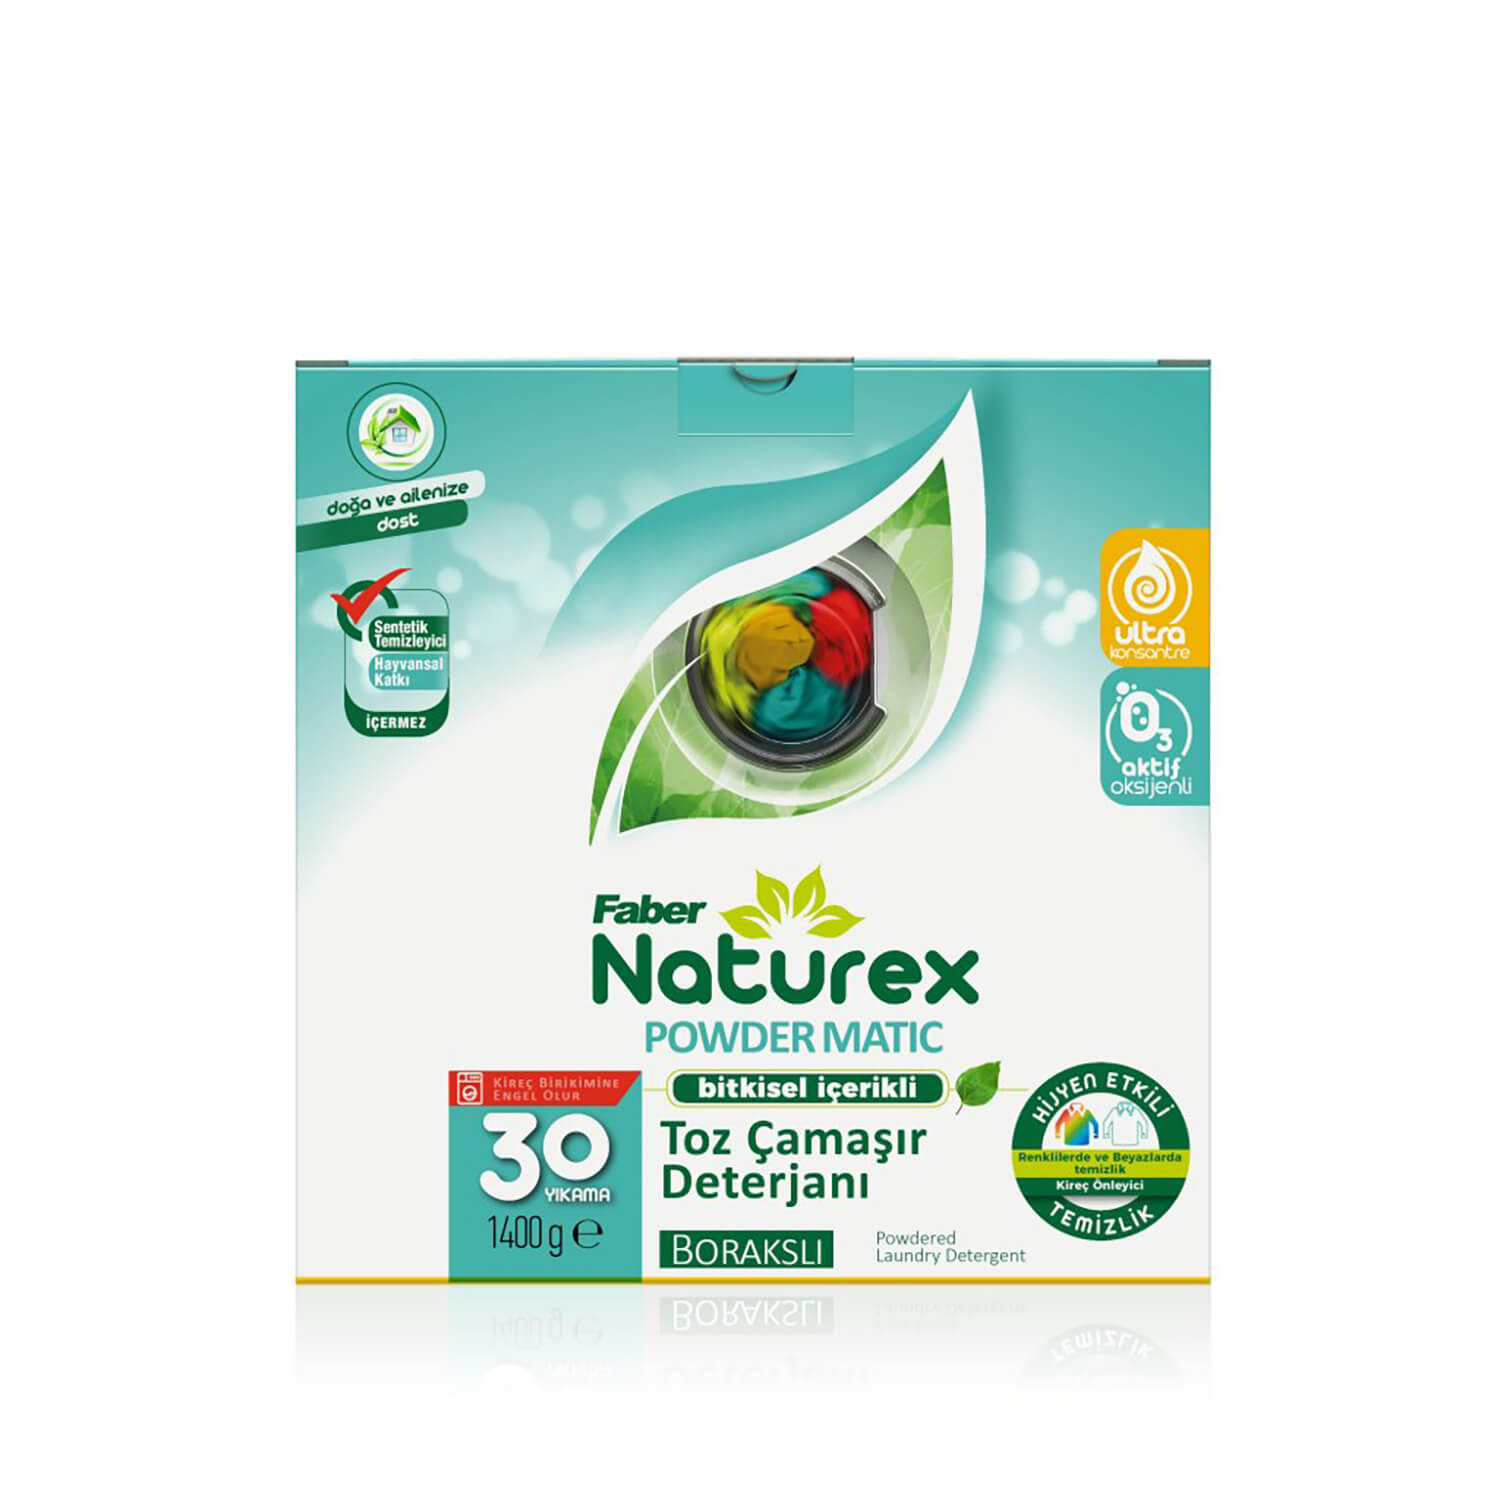 Faber Naturex® Powder Matic